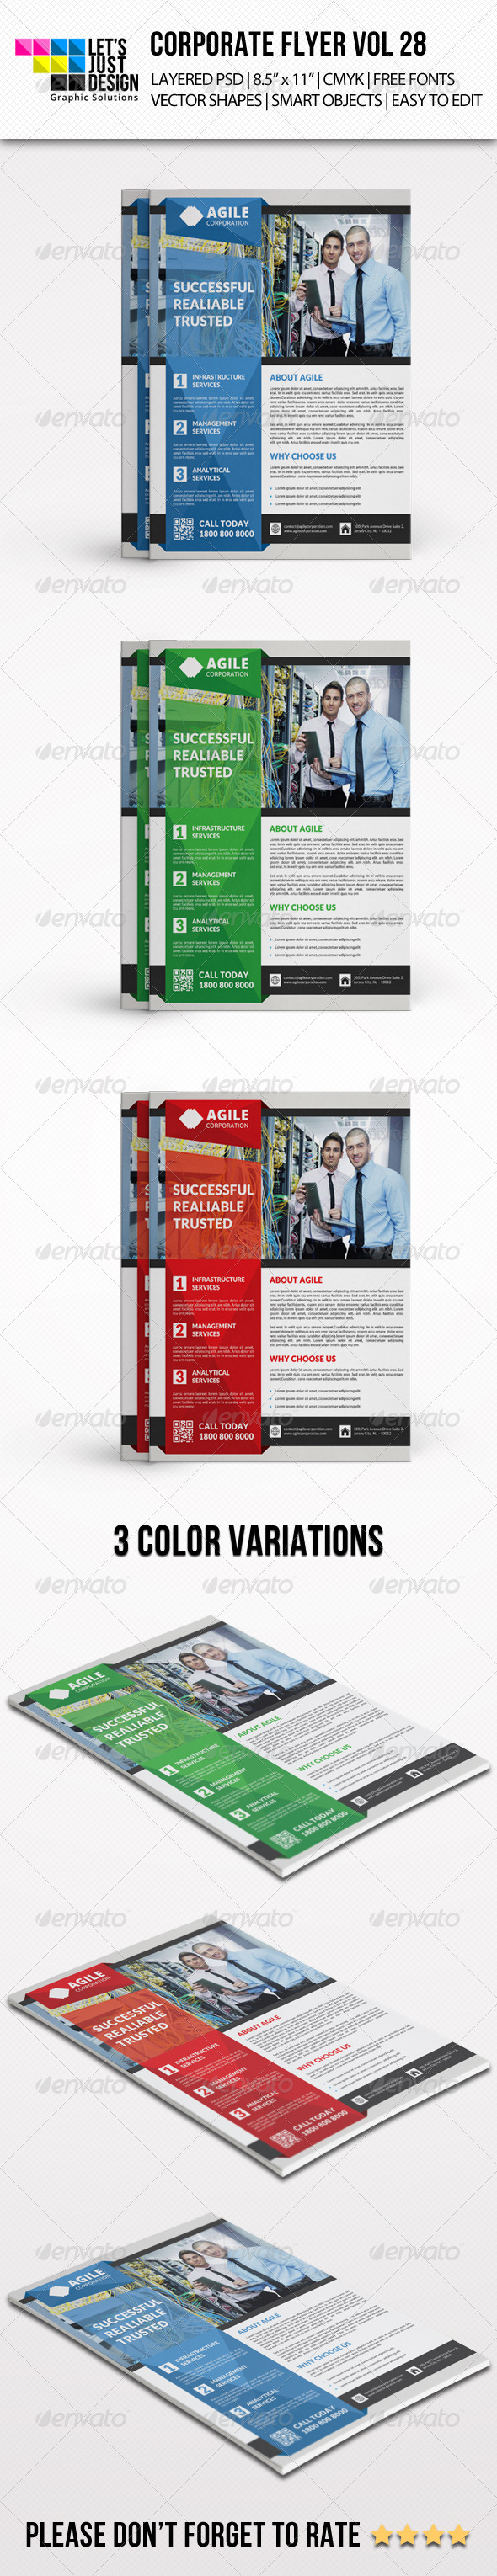 Corporate Flyer Template Vol 28